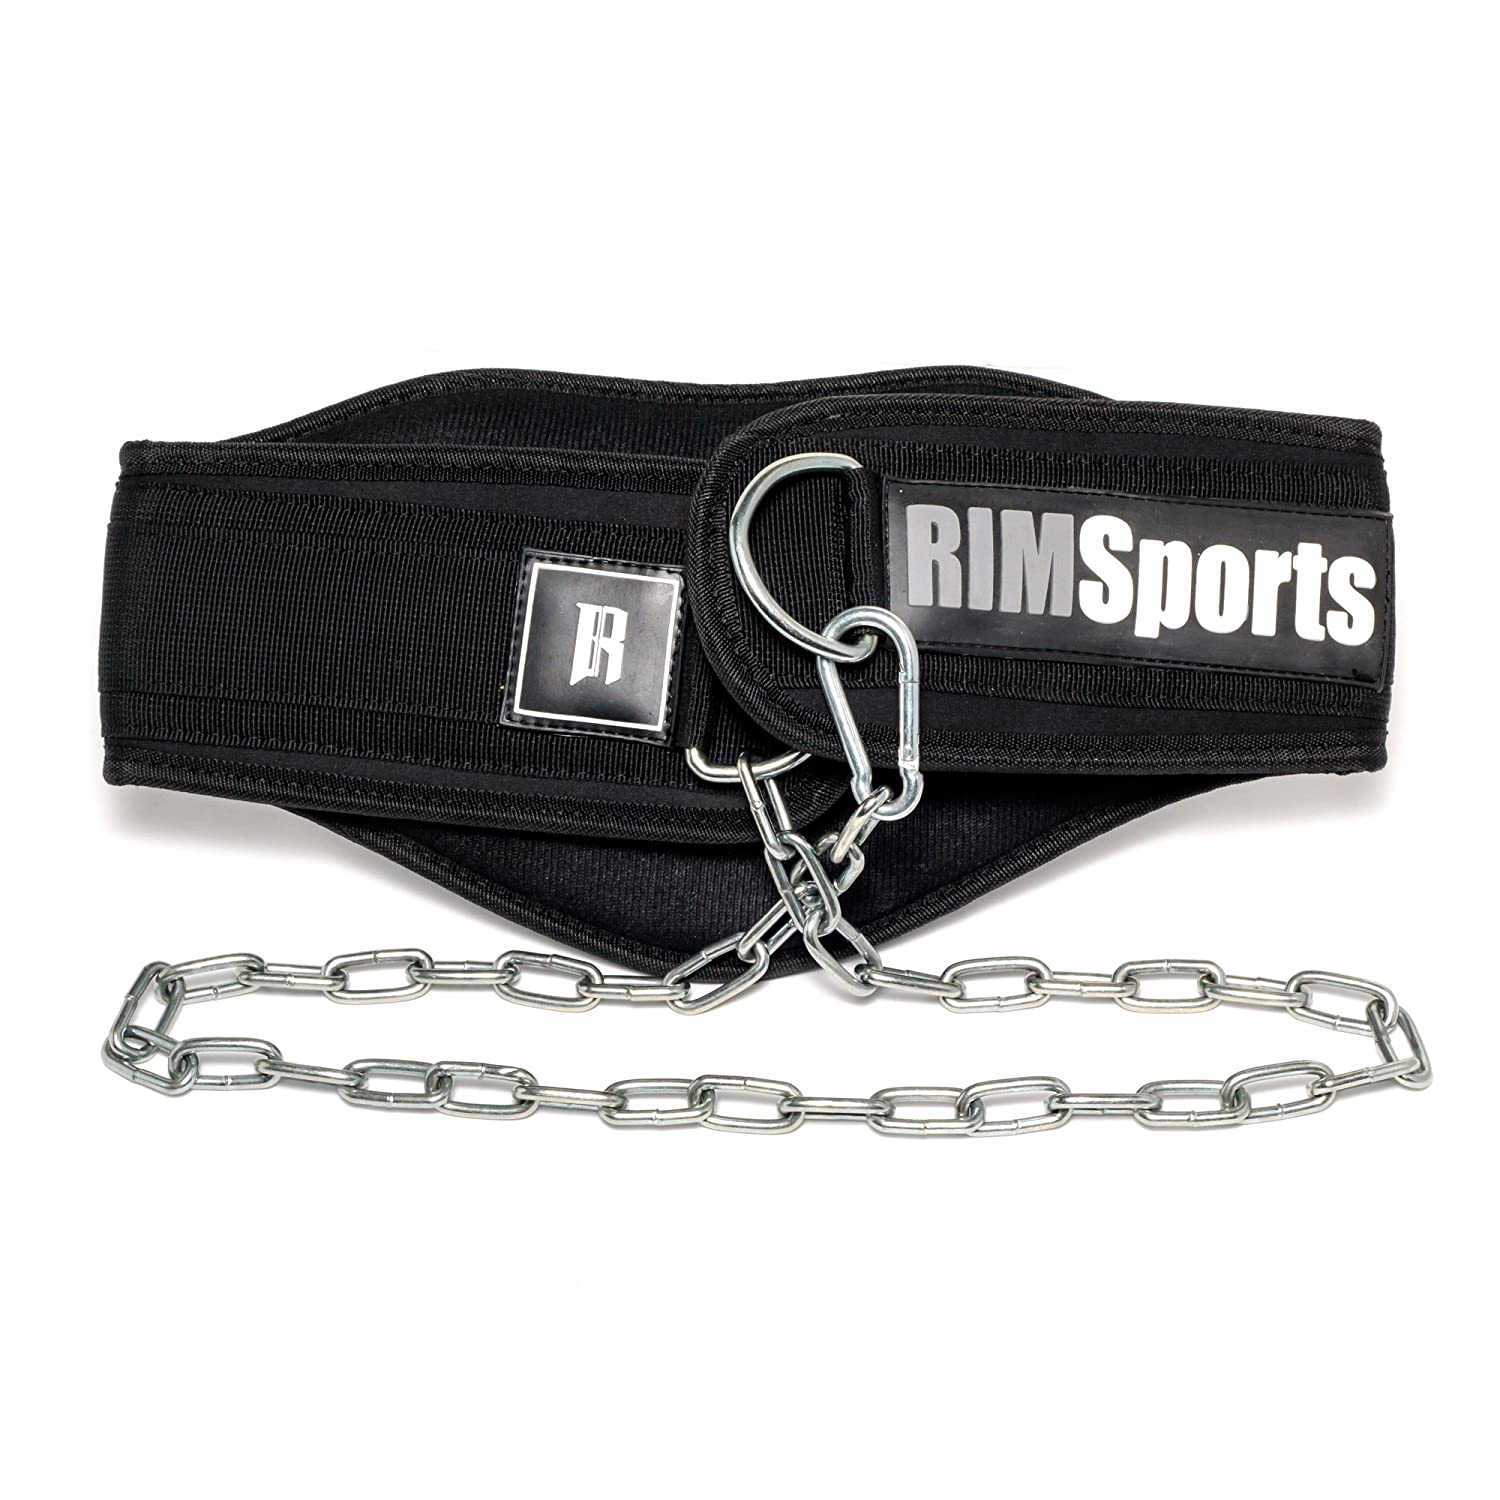 RIMSports Weight Lifting Belt Clip Best Weight Belts for Men and Wome Included